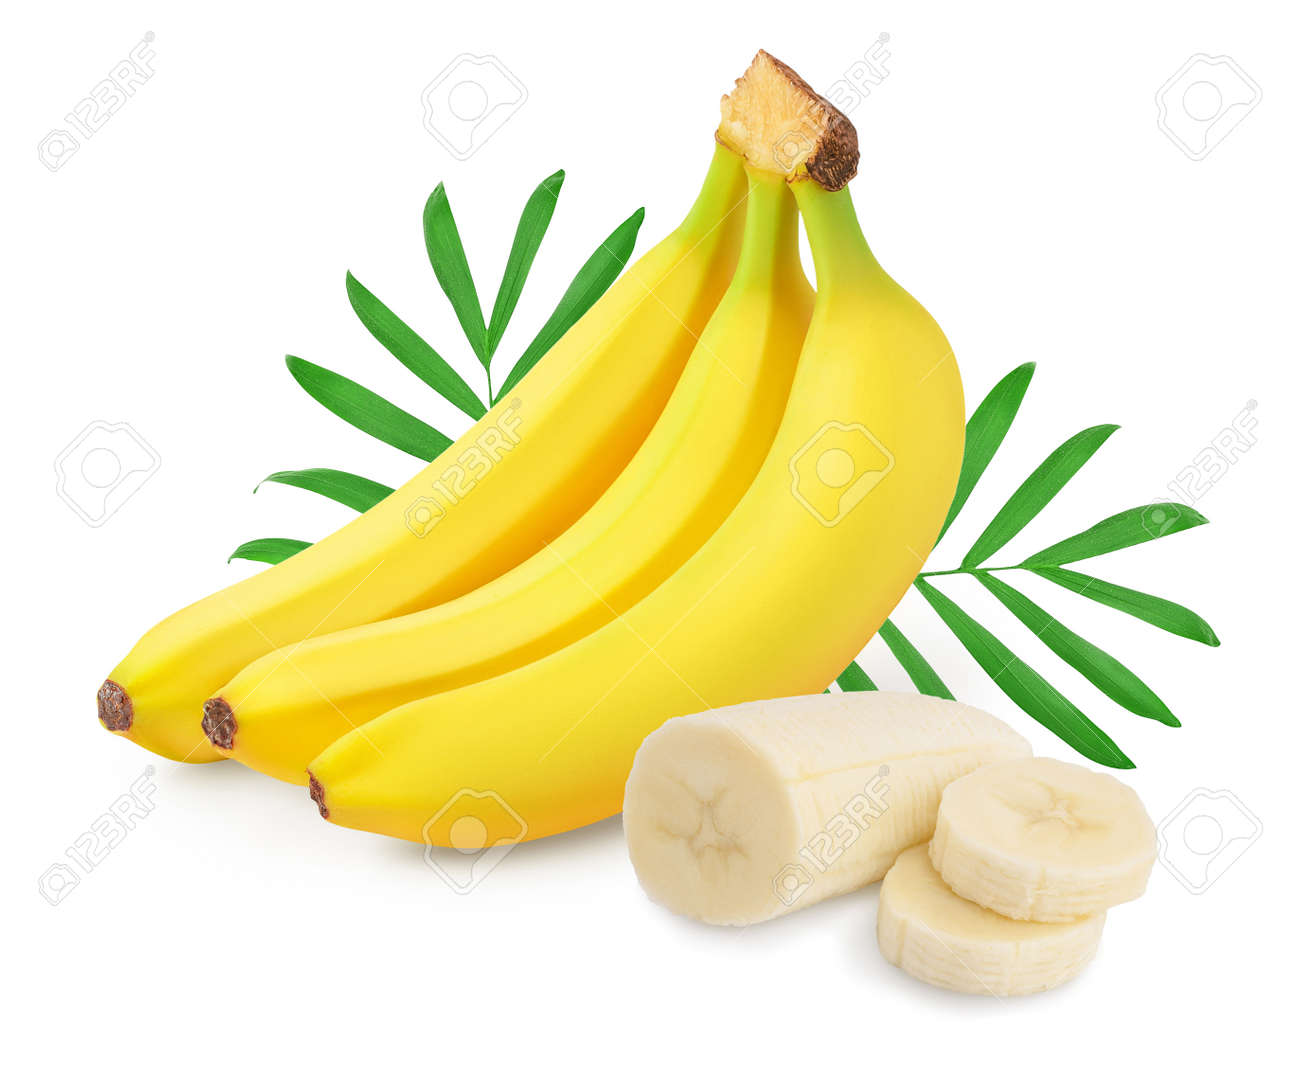 Bunch of bananas isolated on white background with clipping path and full depth of field. - 146695910